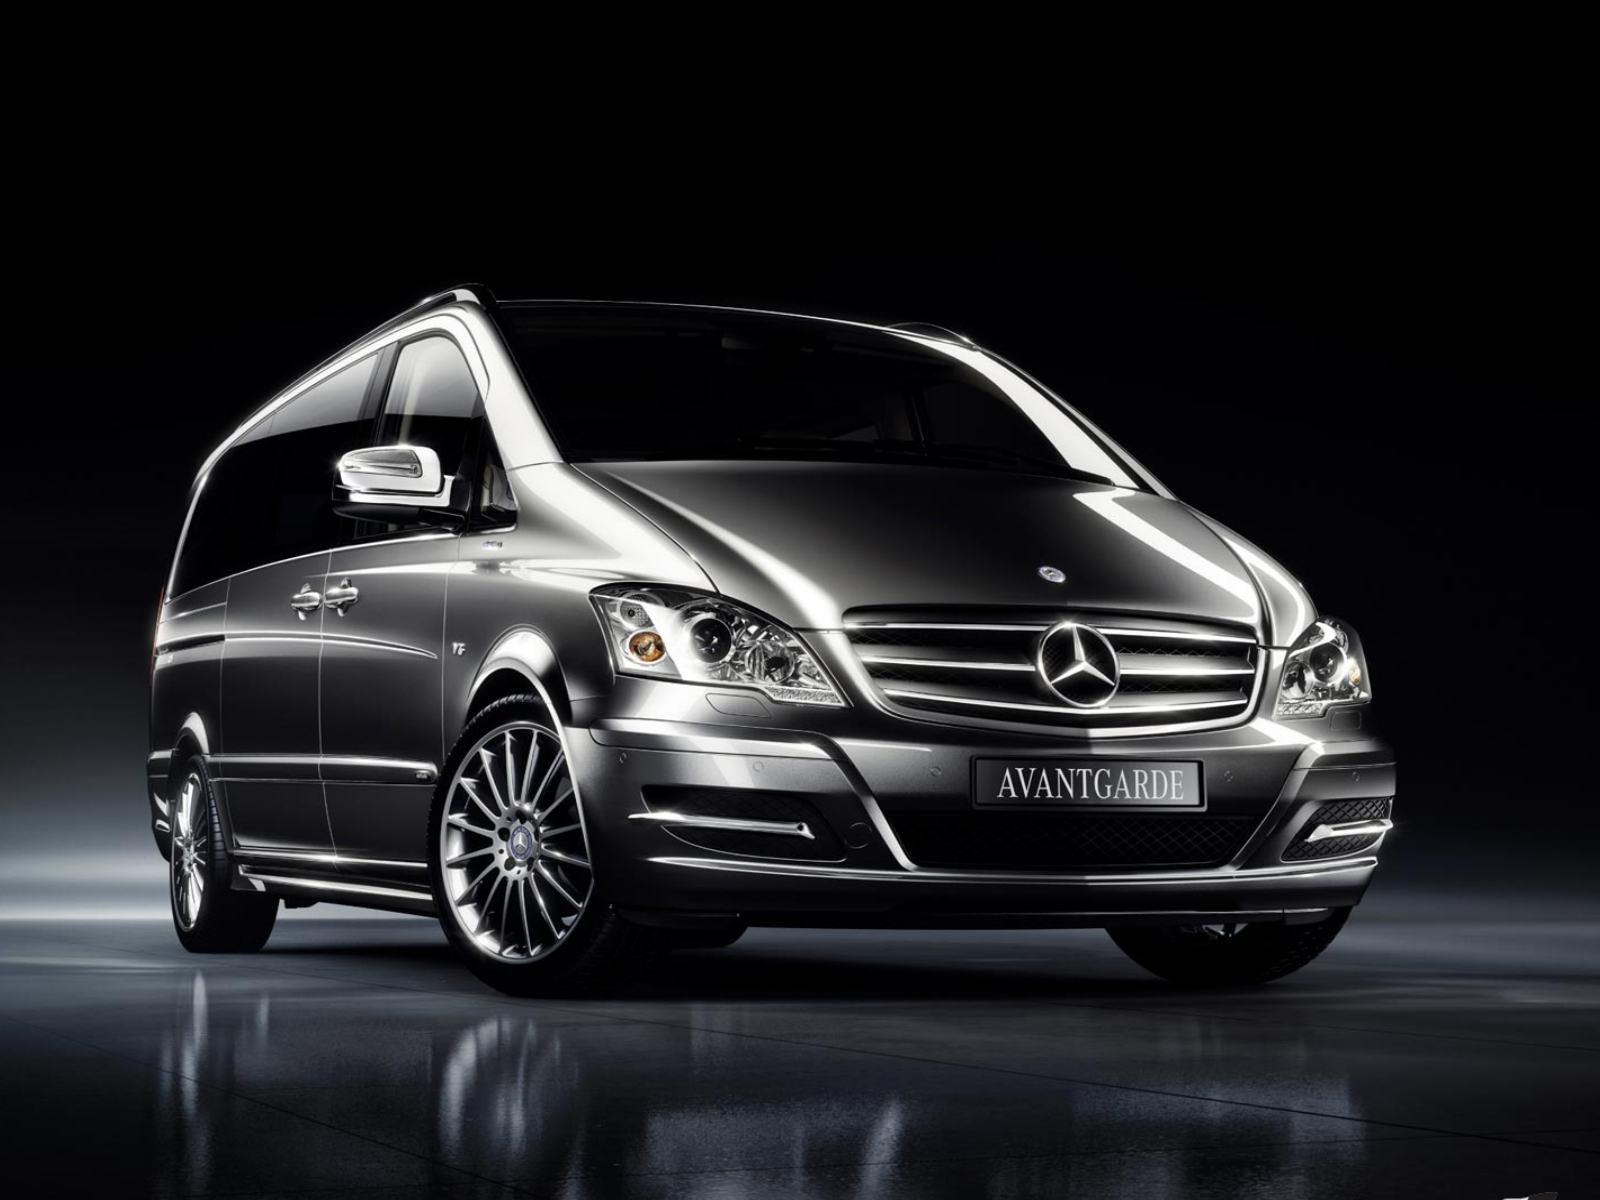 Обои Mercedes-Benz-Viano-2011-Avantgarde-Edition-125 1600x1200